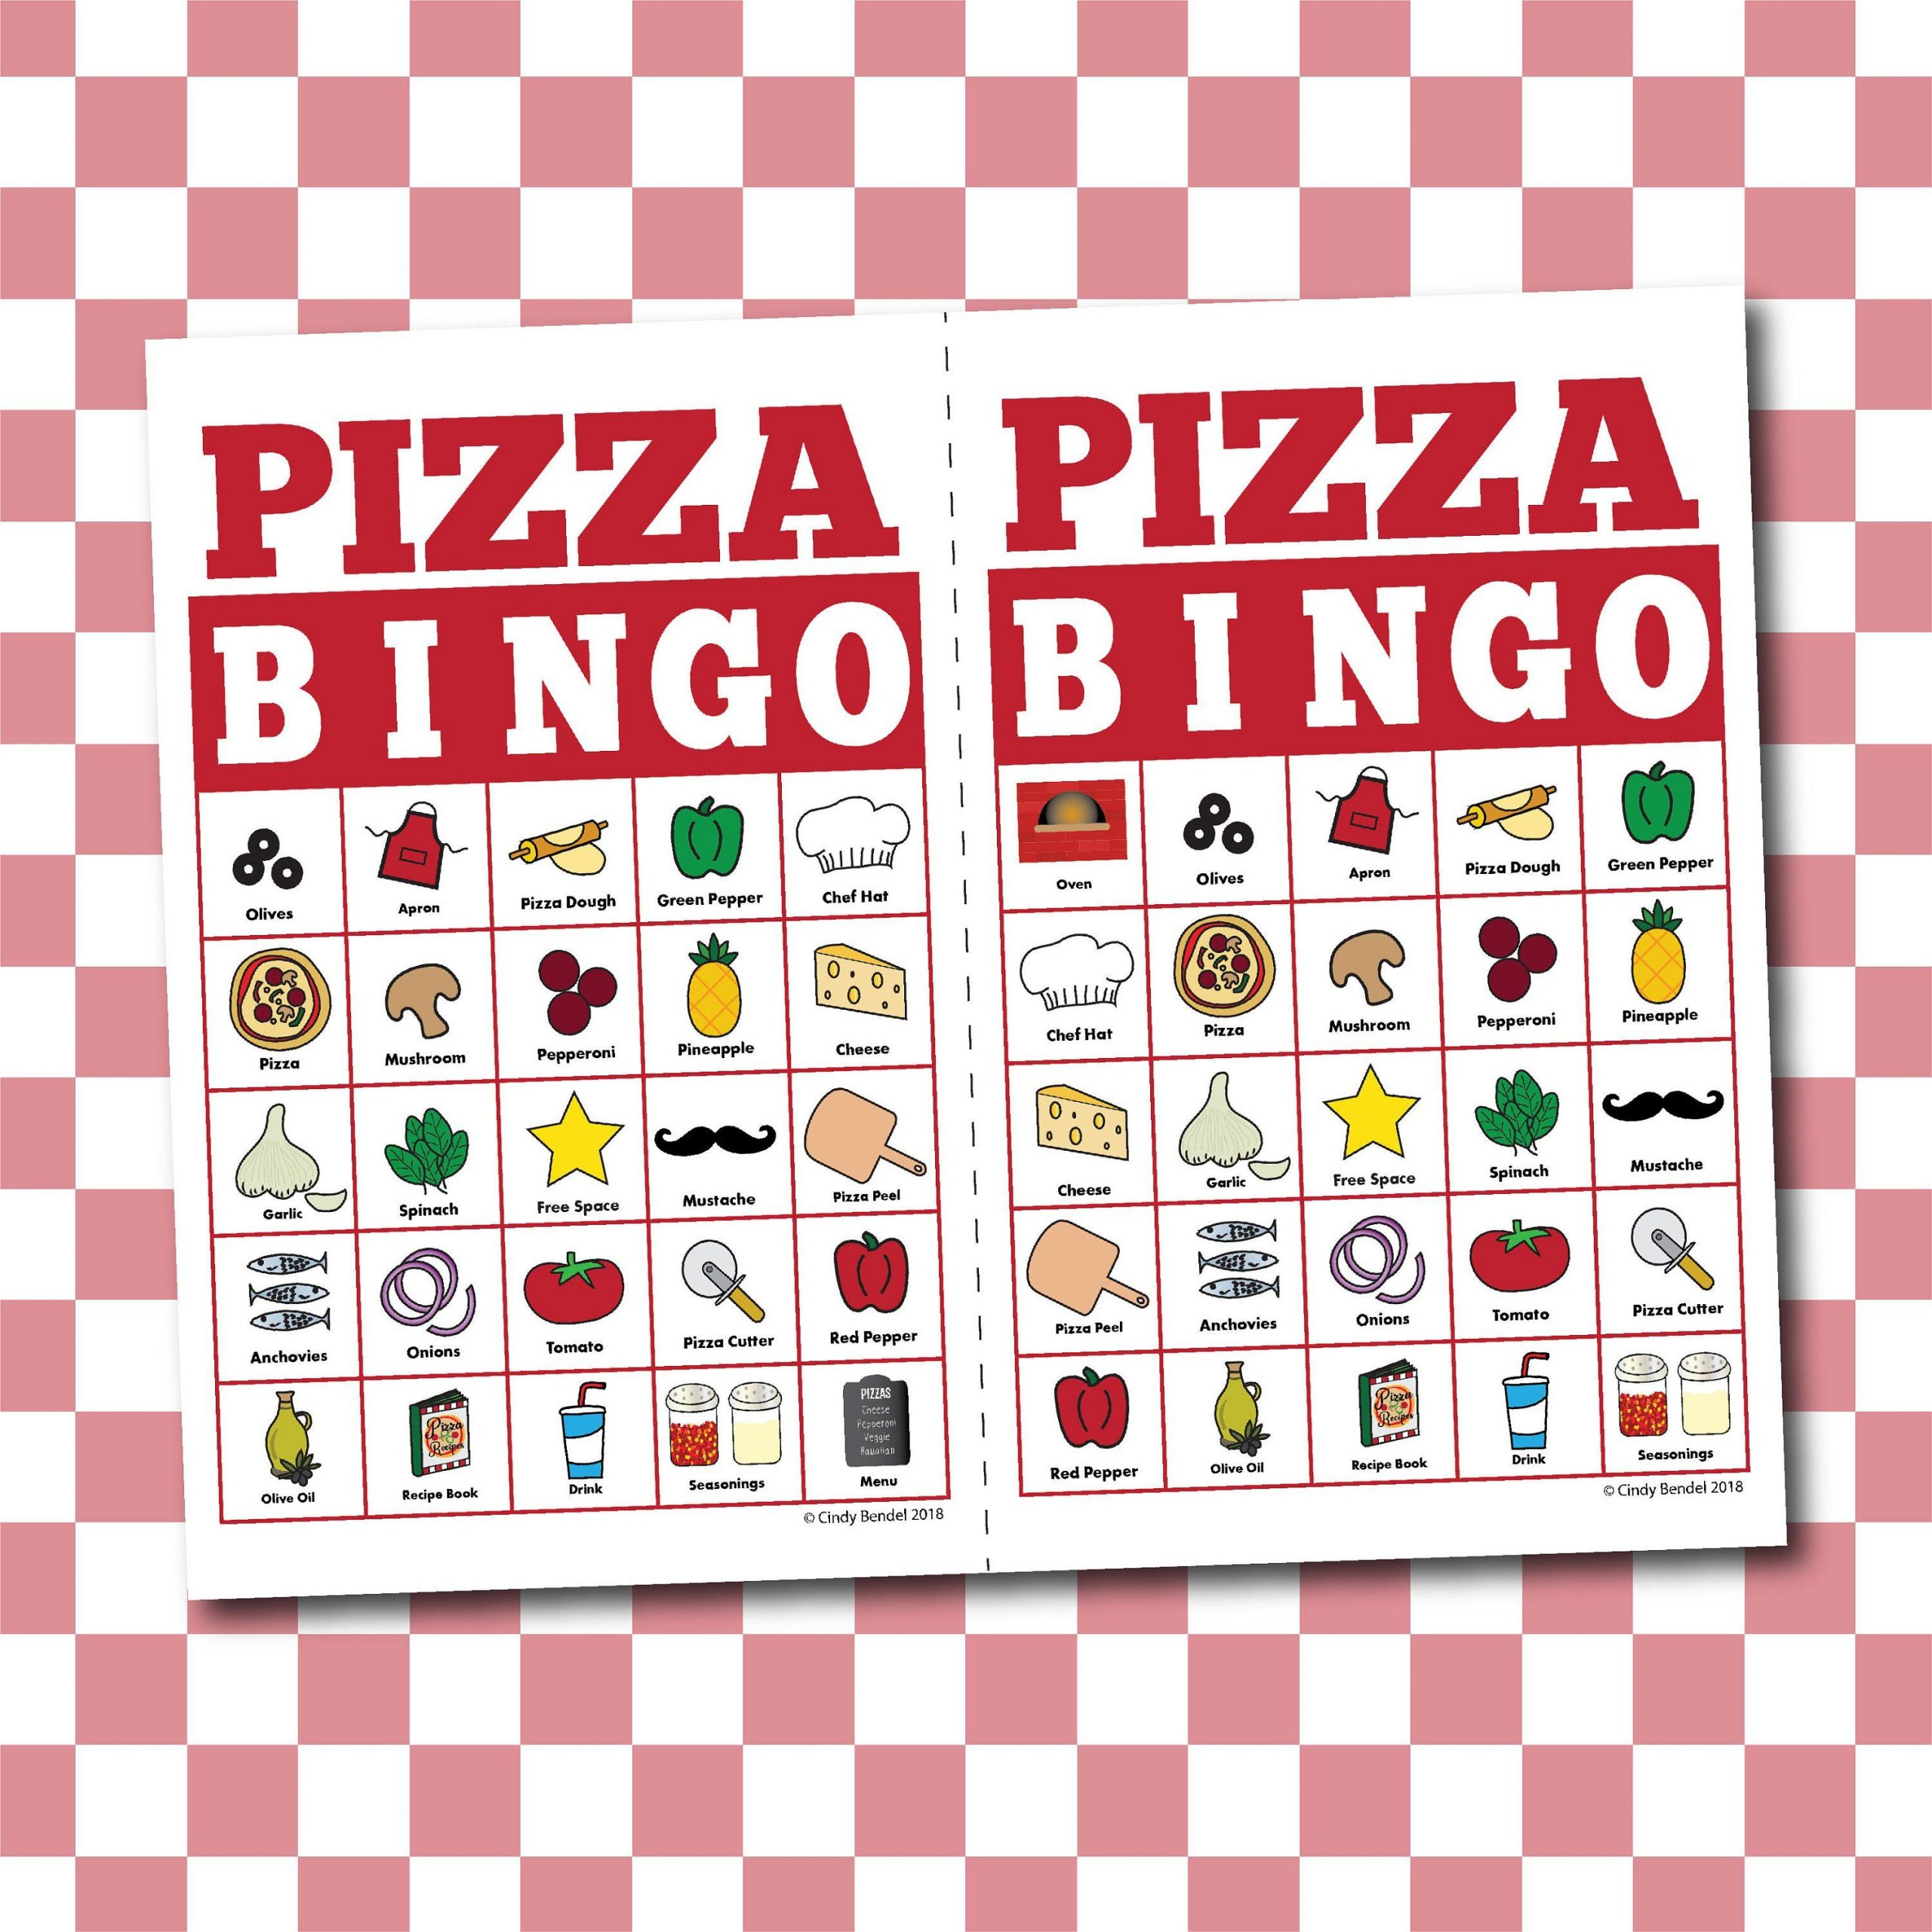 Pizza Bingo Board Game - Memory Or Matching Game - Digital